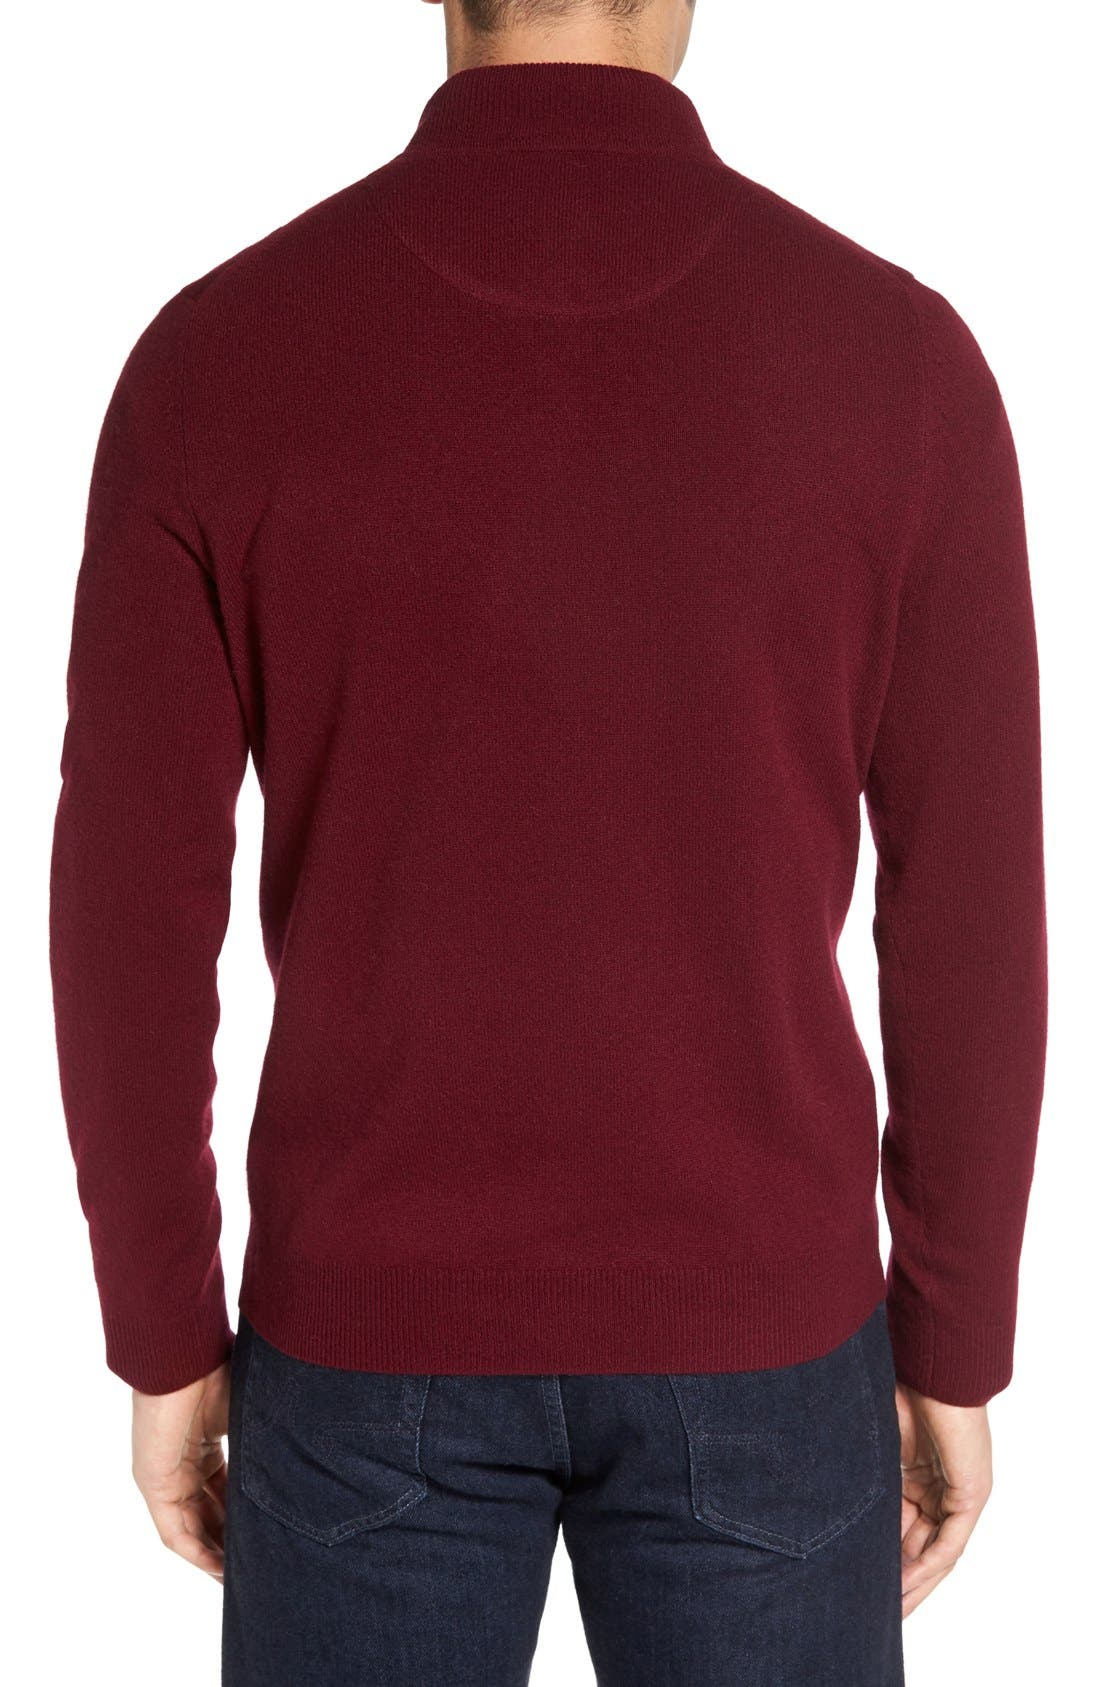 Alternate Image 2  - Nordstrom Men's Shop Regular Fit Cashmere Quarter Zip Pullover (Regular & Tall)